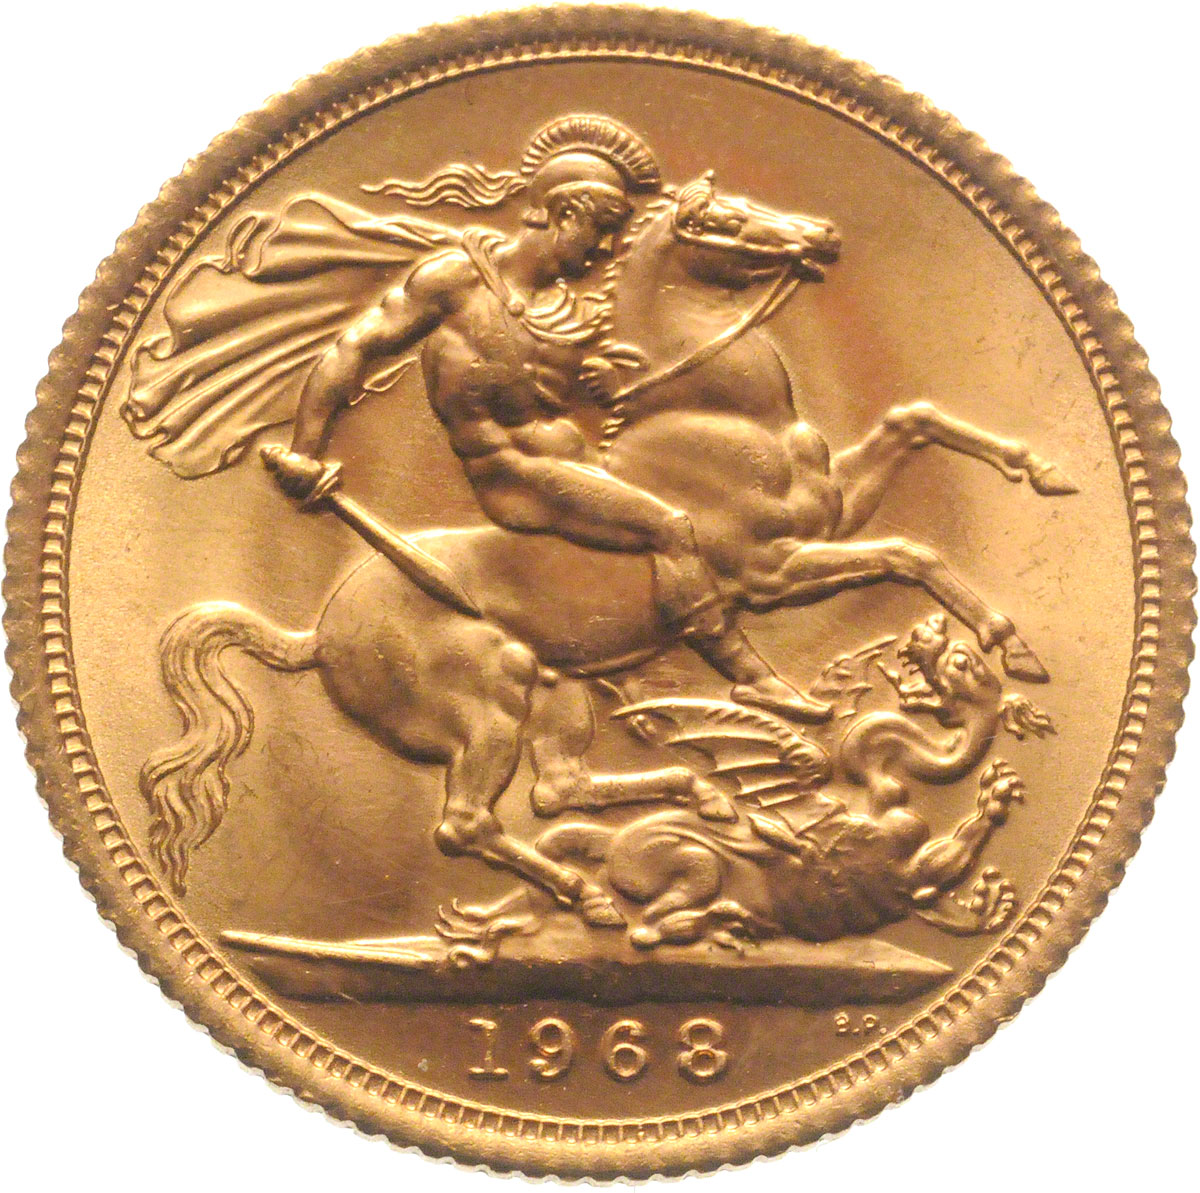 Reverse face of a 1968 gold Sovereign